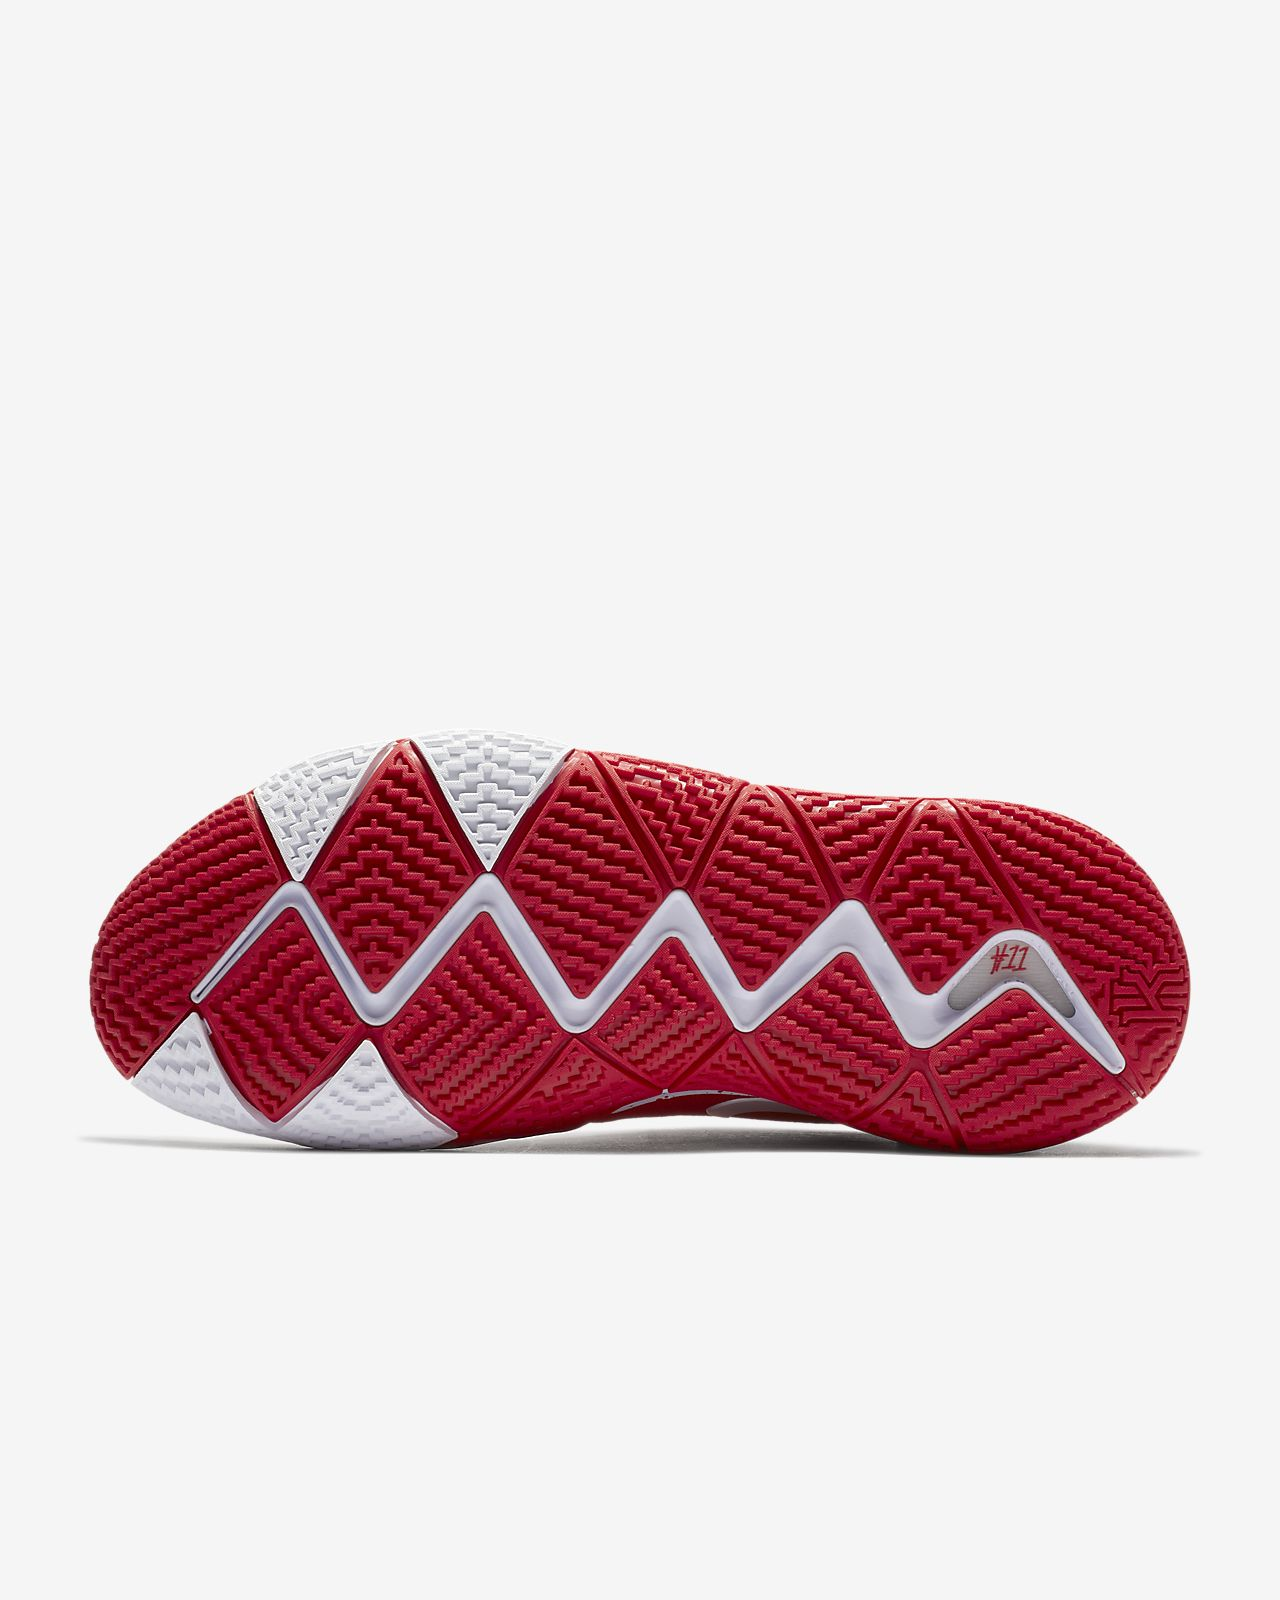 716ea07f26f3 Kyrie 4 (Team) Basketball Shoe. Nike.com